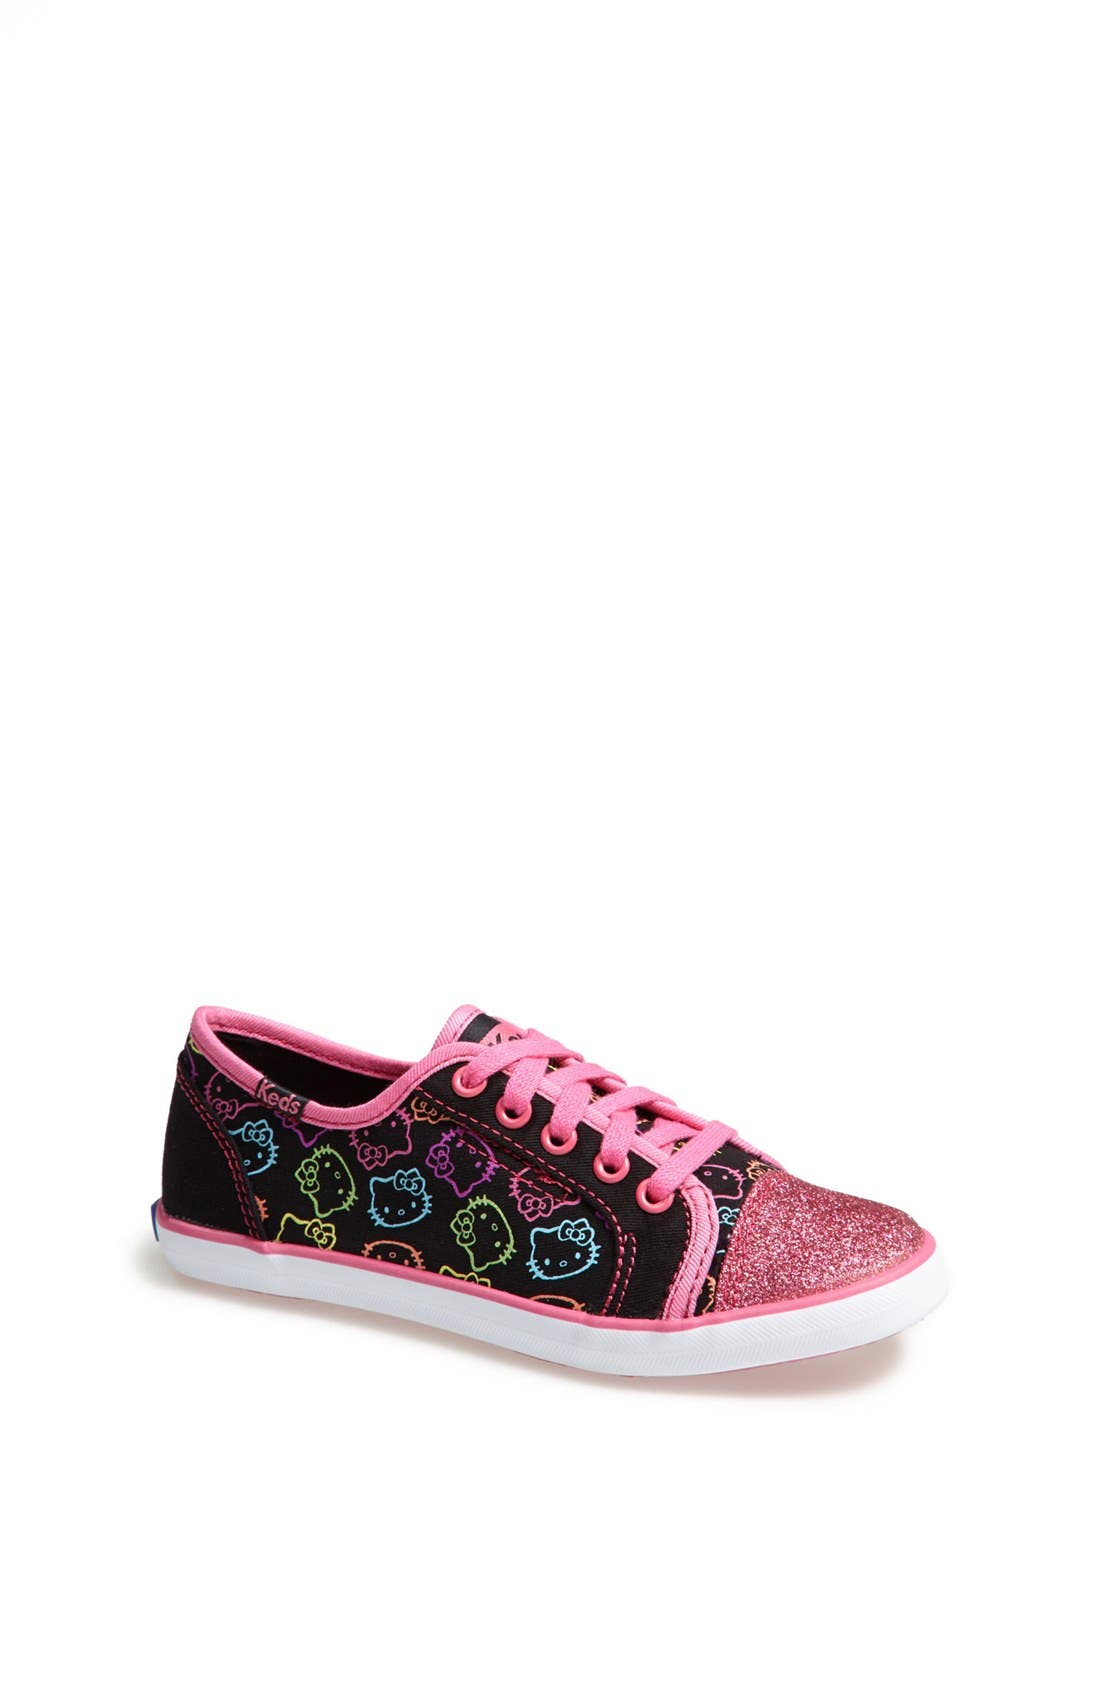 Main Image - Keds 'Hello Kitty® - Rally' Sneaker (Toddler, Little Kid & Big Kid)